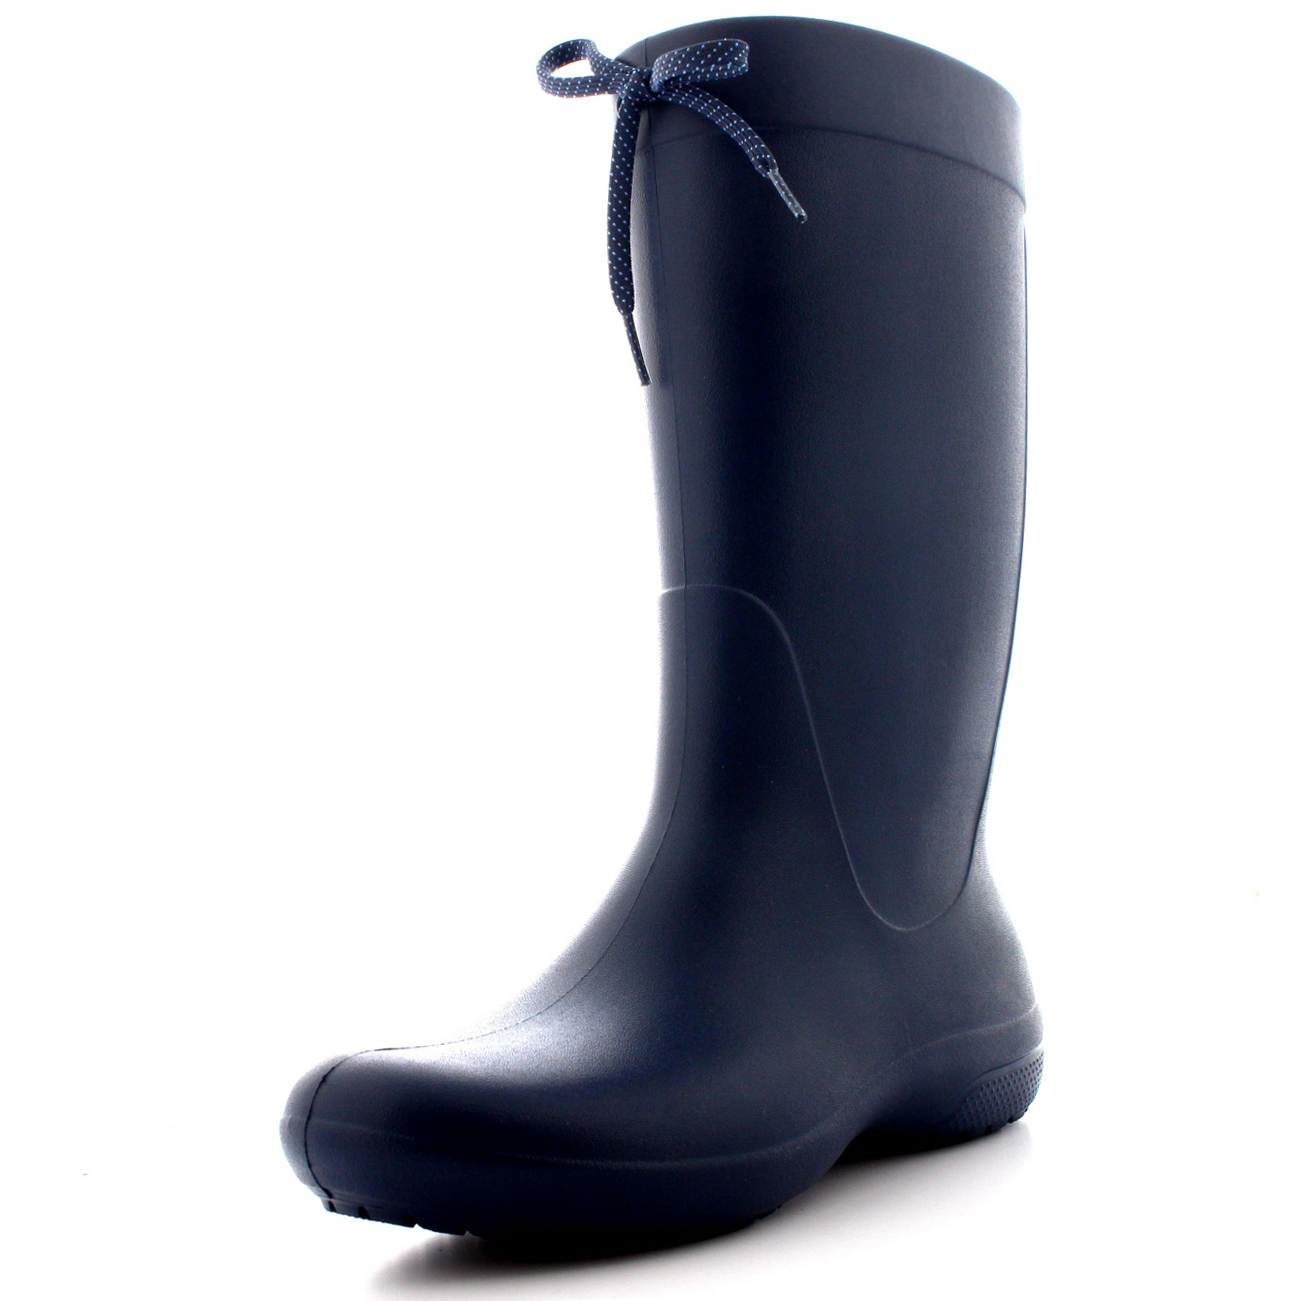 Ladies-Crocs-Freesail-Rain-Wellies-Pull-On-Lightweight-Mid-Calf-Boots-All-Sizes